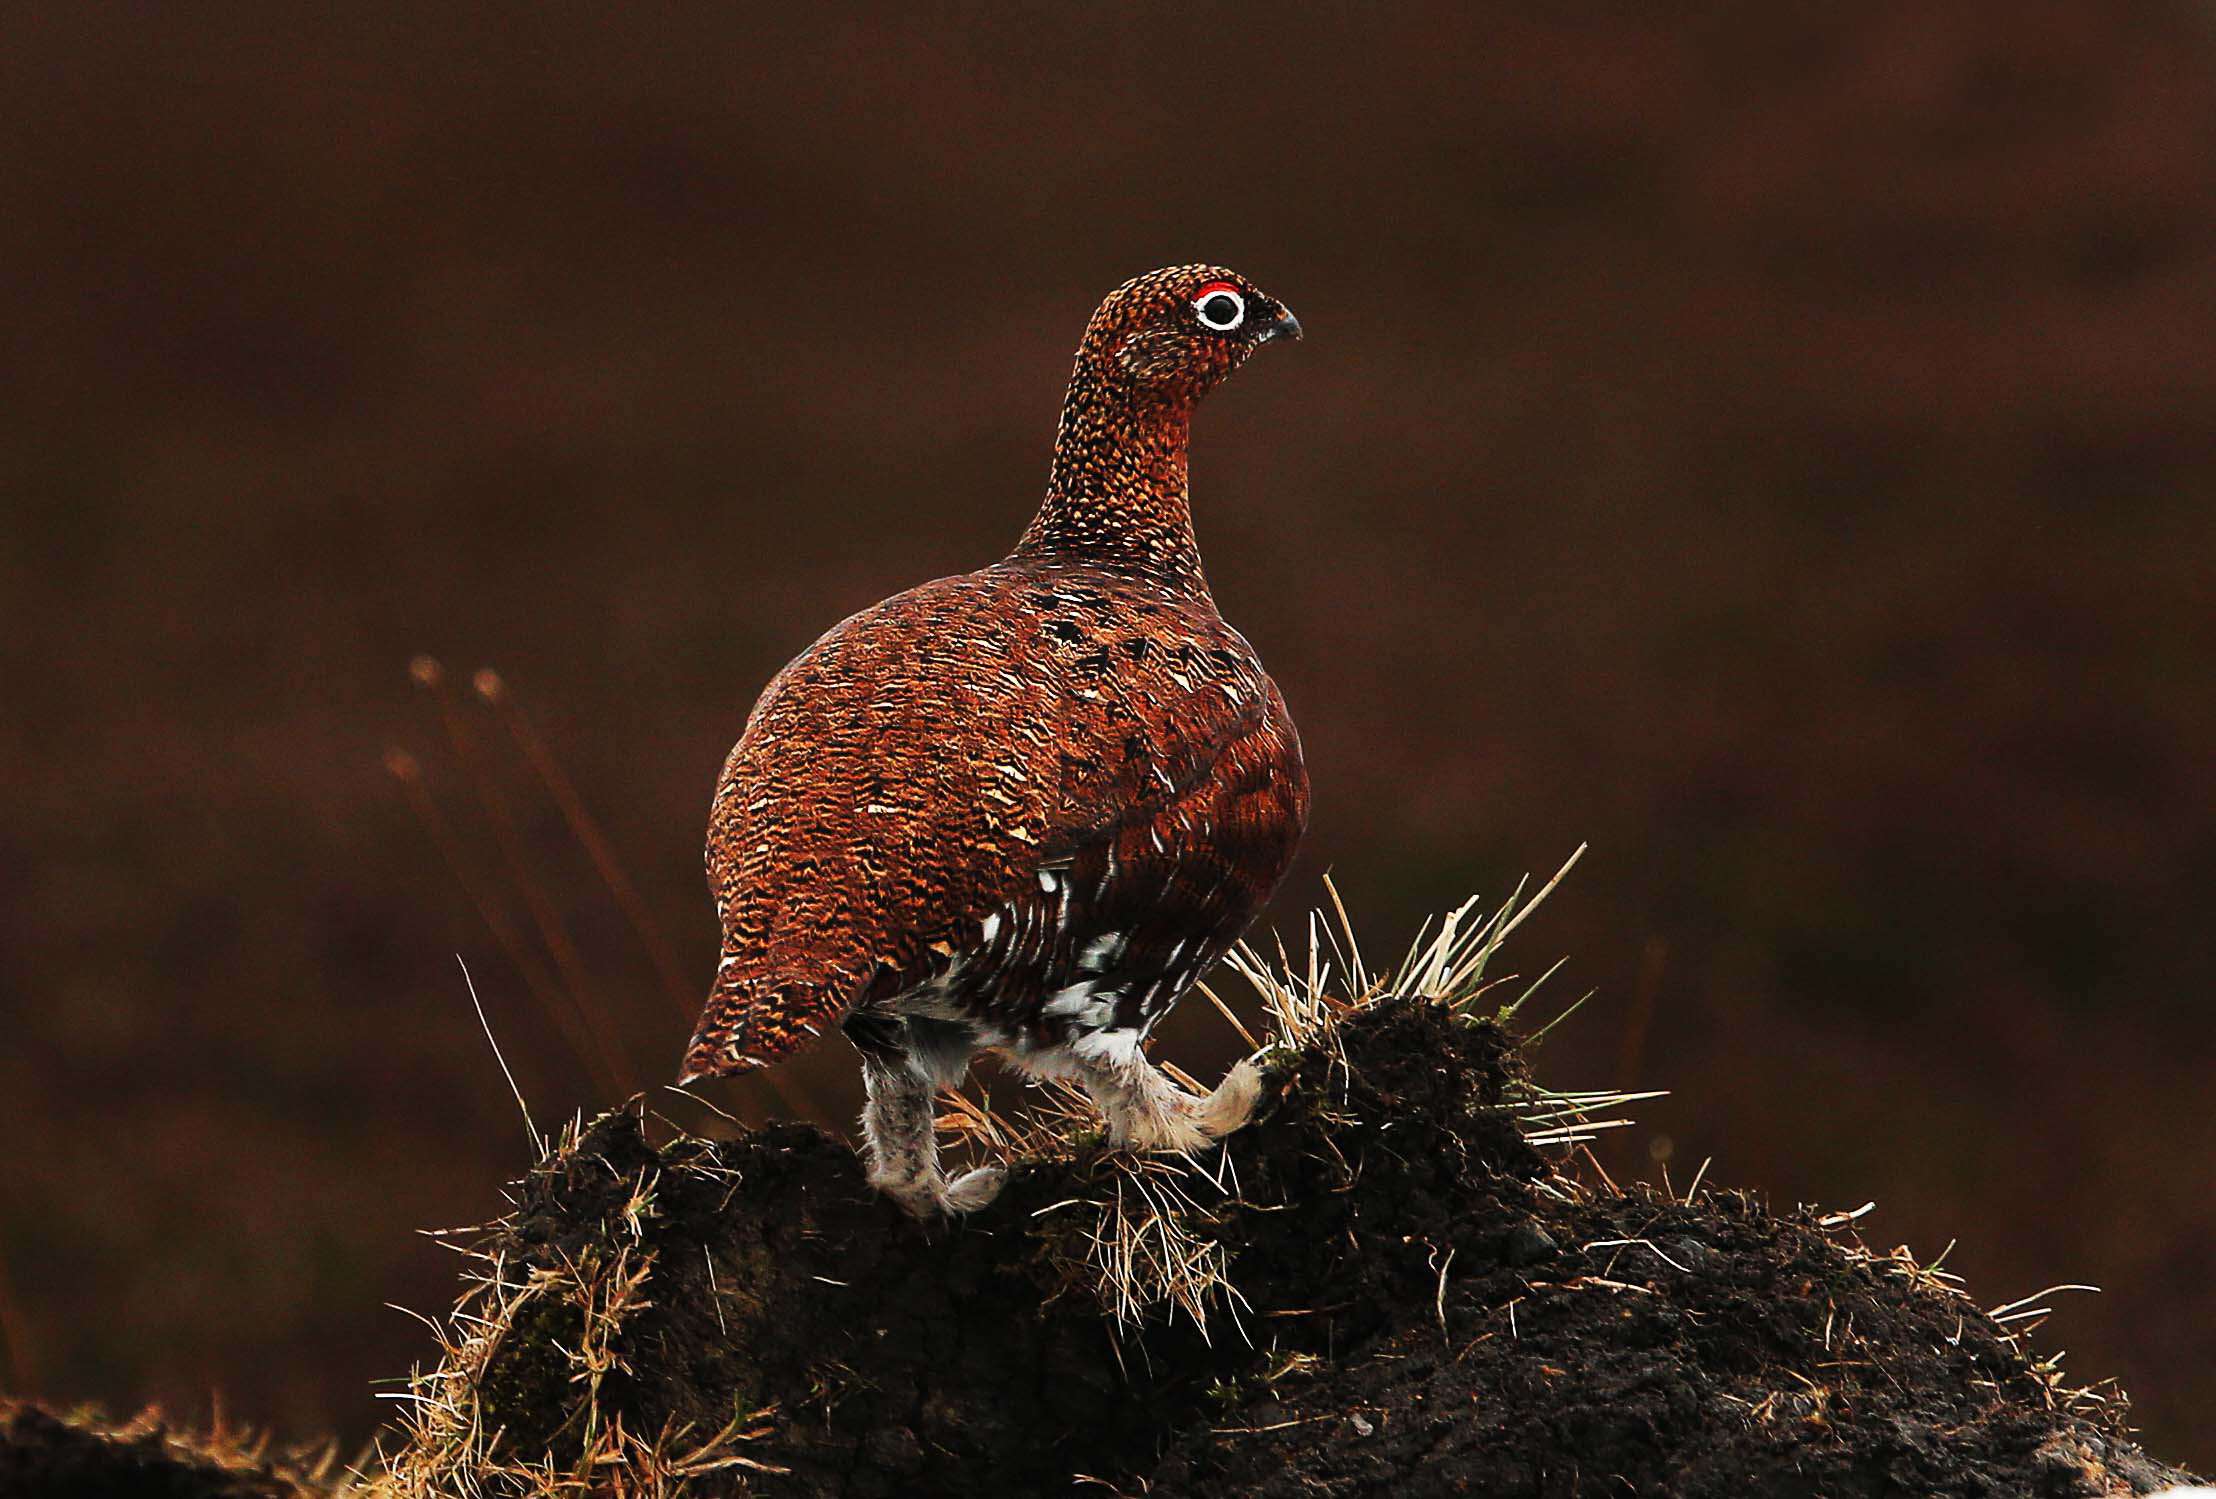 The grouse shooting season started on August 12. Picture: Sarah Caledcott